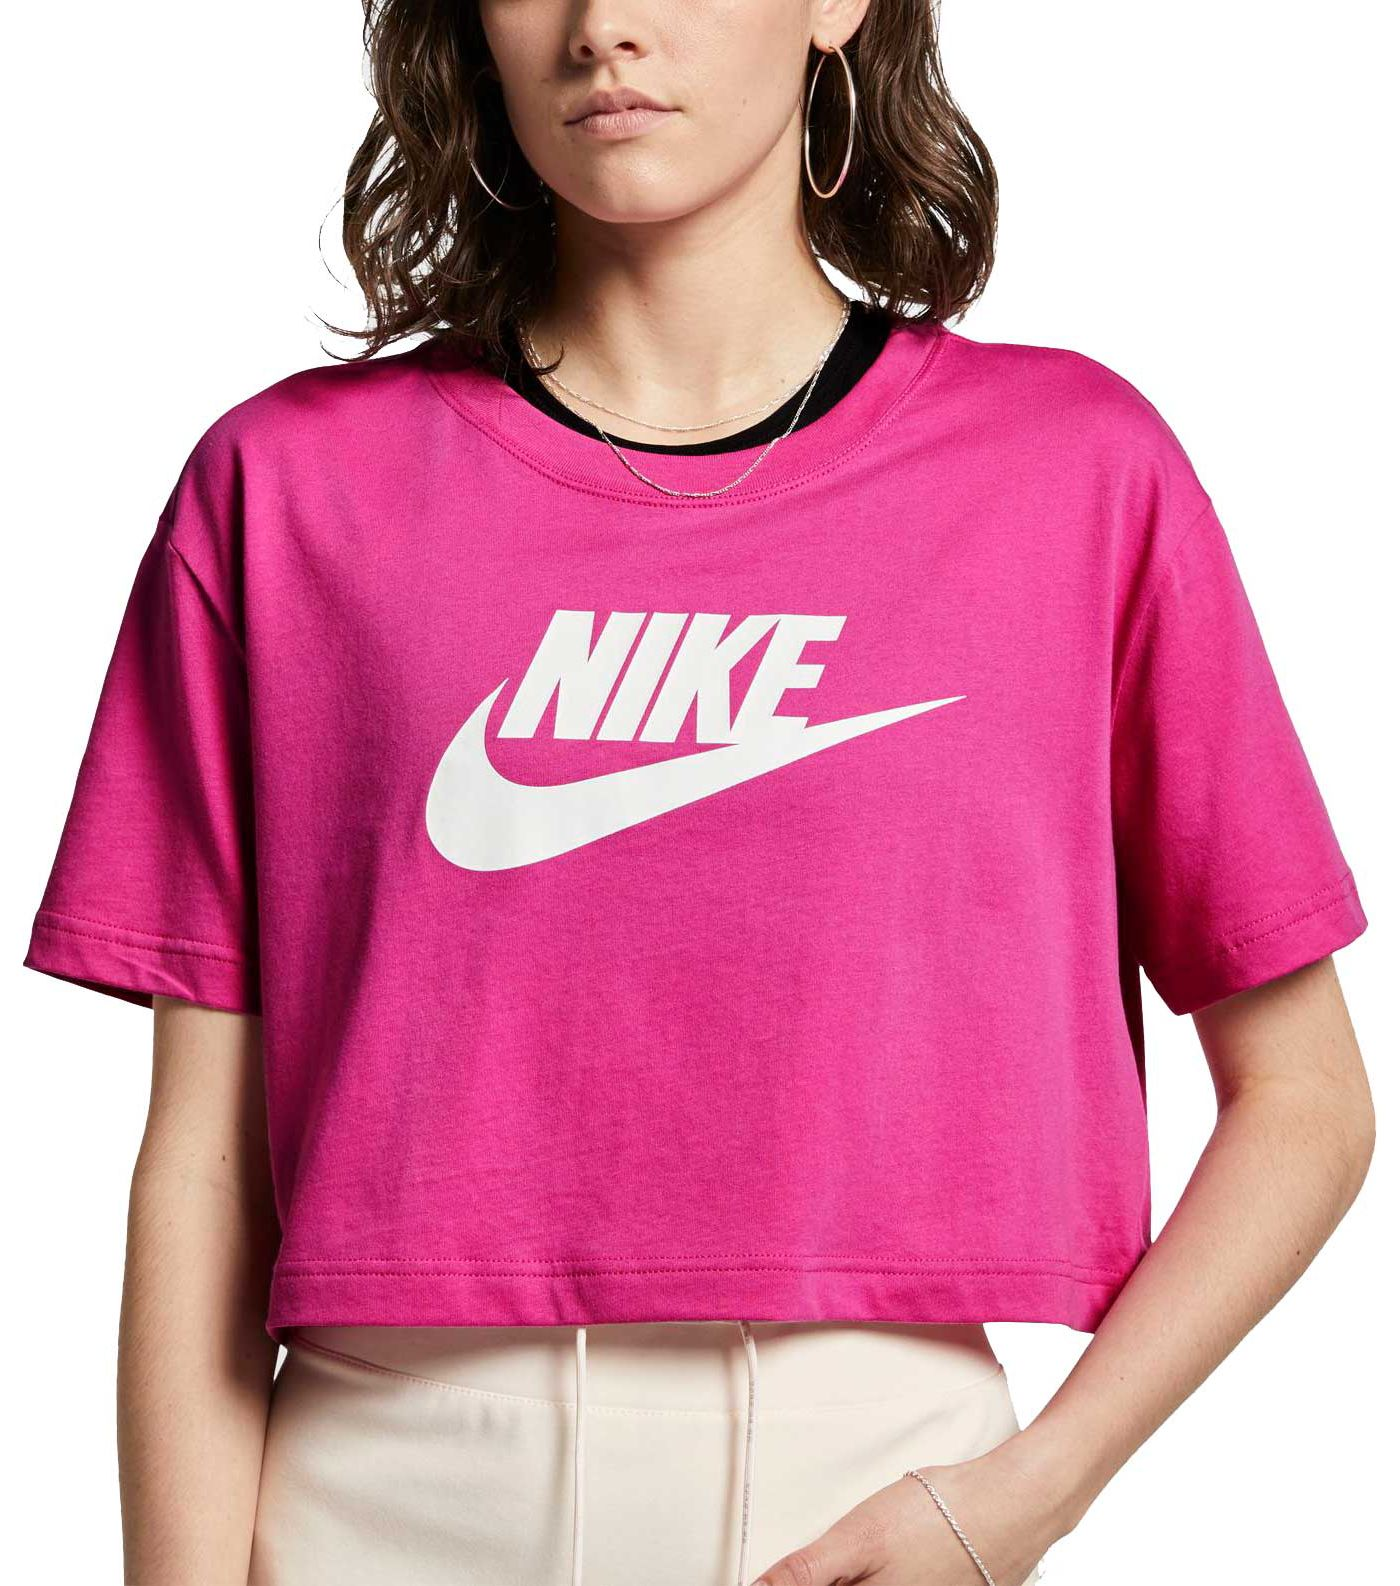 Nike Women's Essential Futura Crop Top